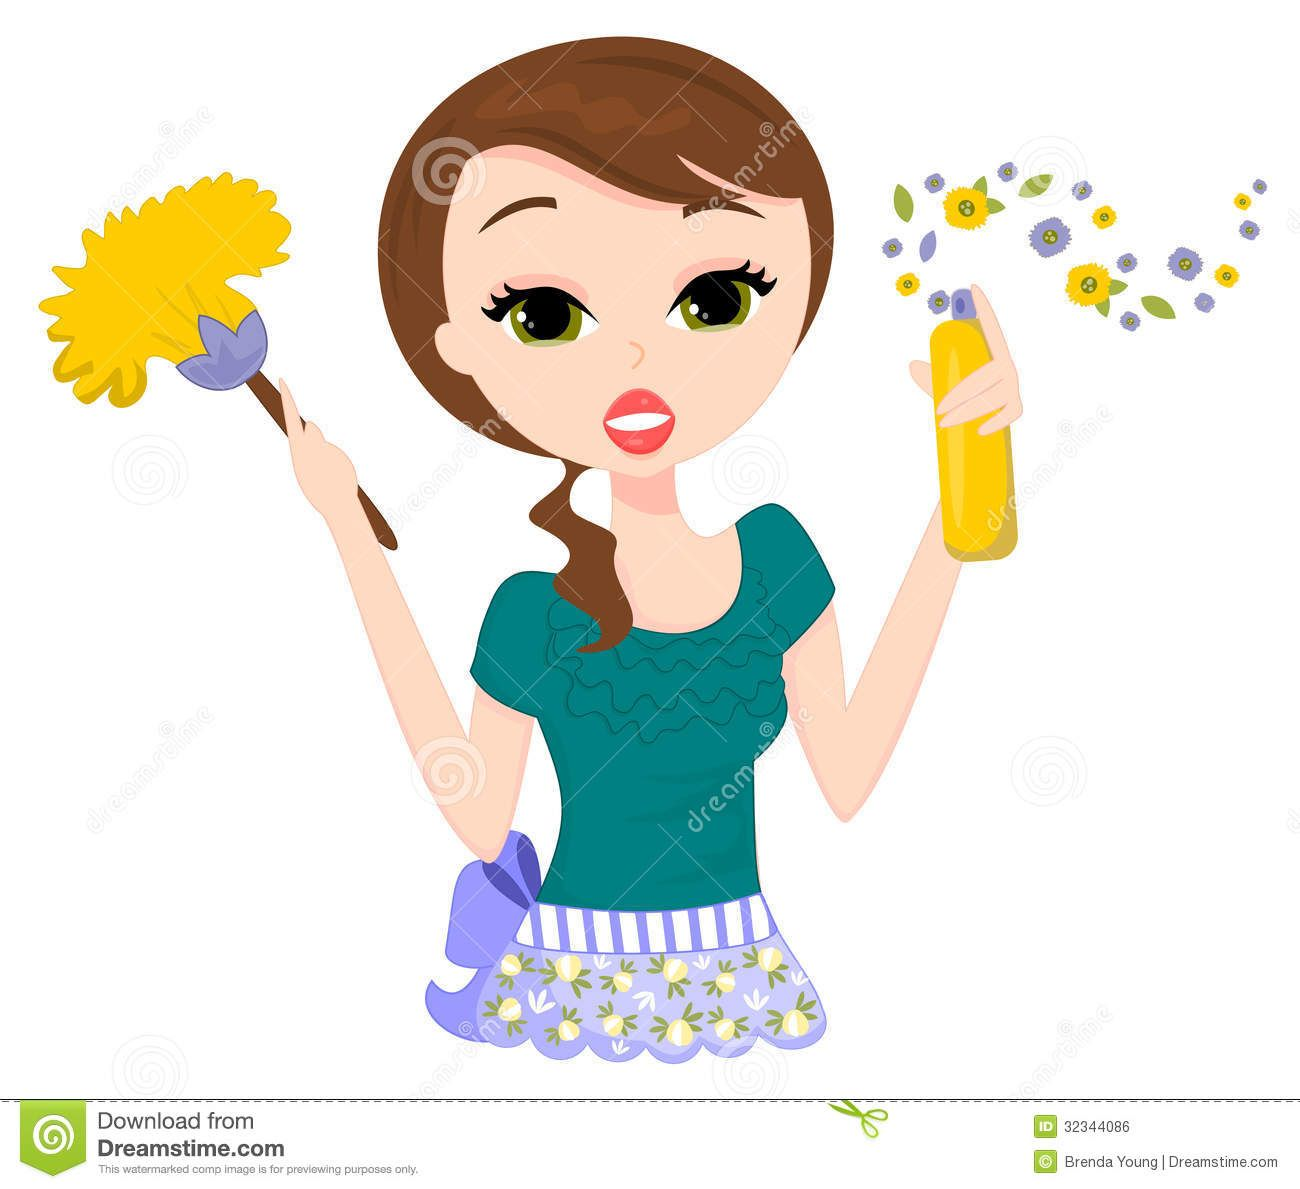 Funny Cleaning Clipart - Clipart Kid | My Clip Art | Pinterest ...